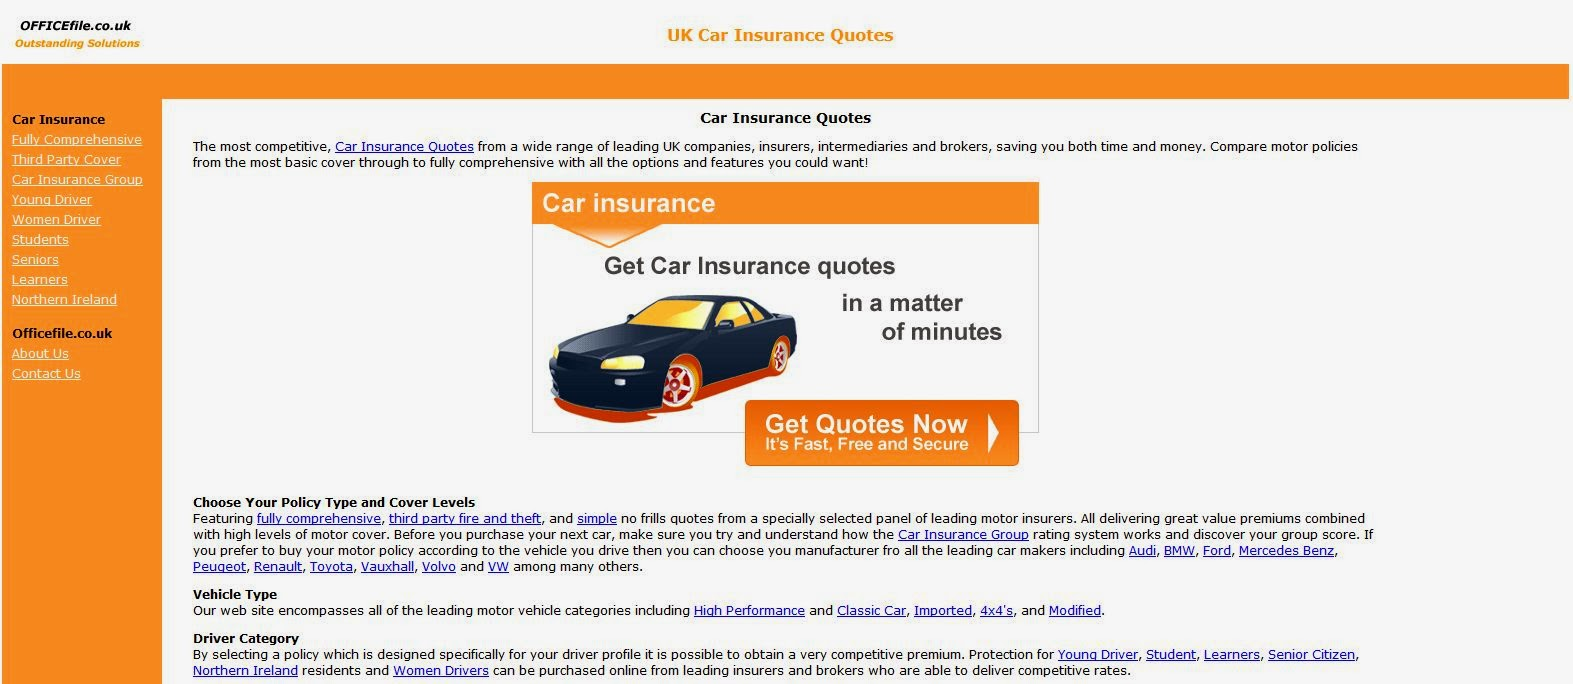 Auto Owners Insurance: Auto Insurance Quotes Us